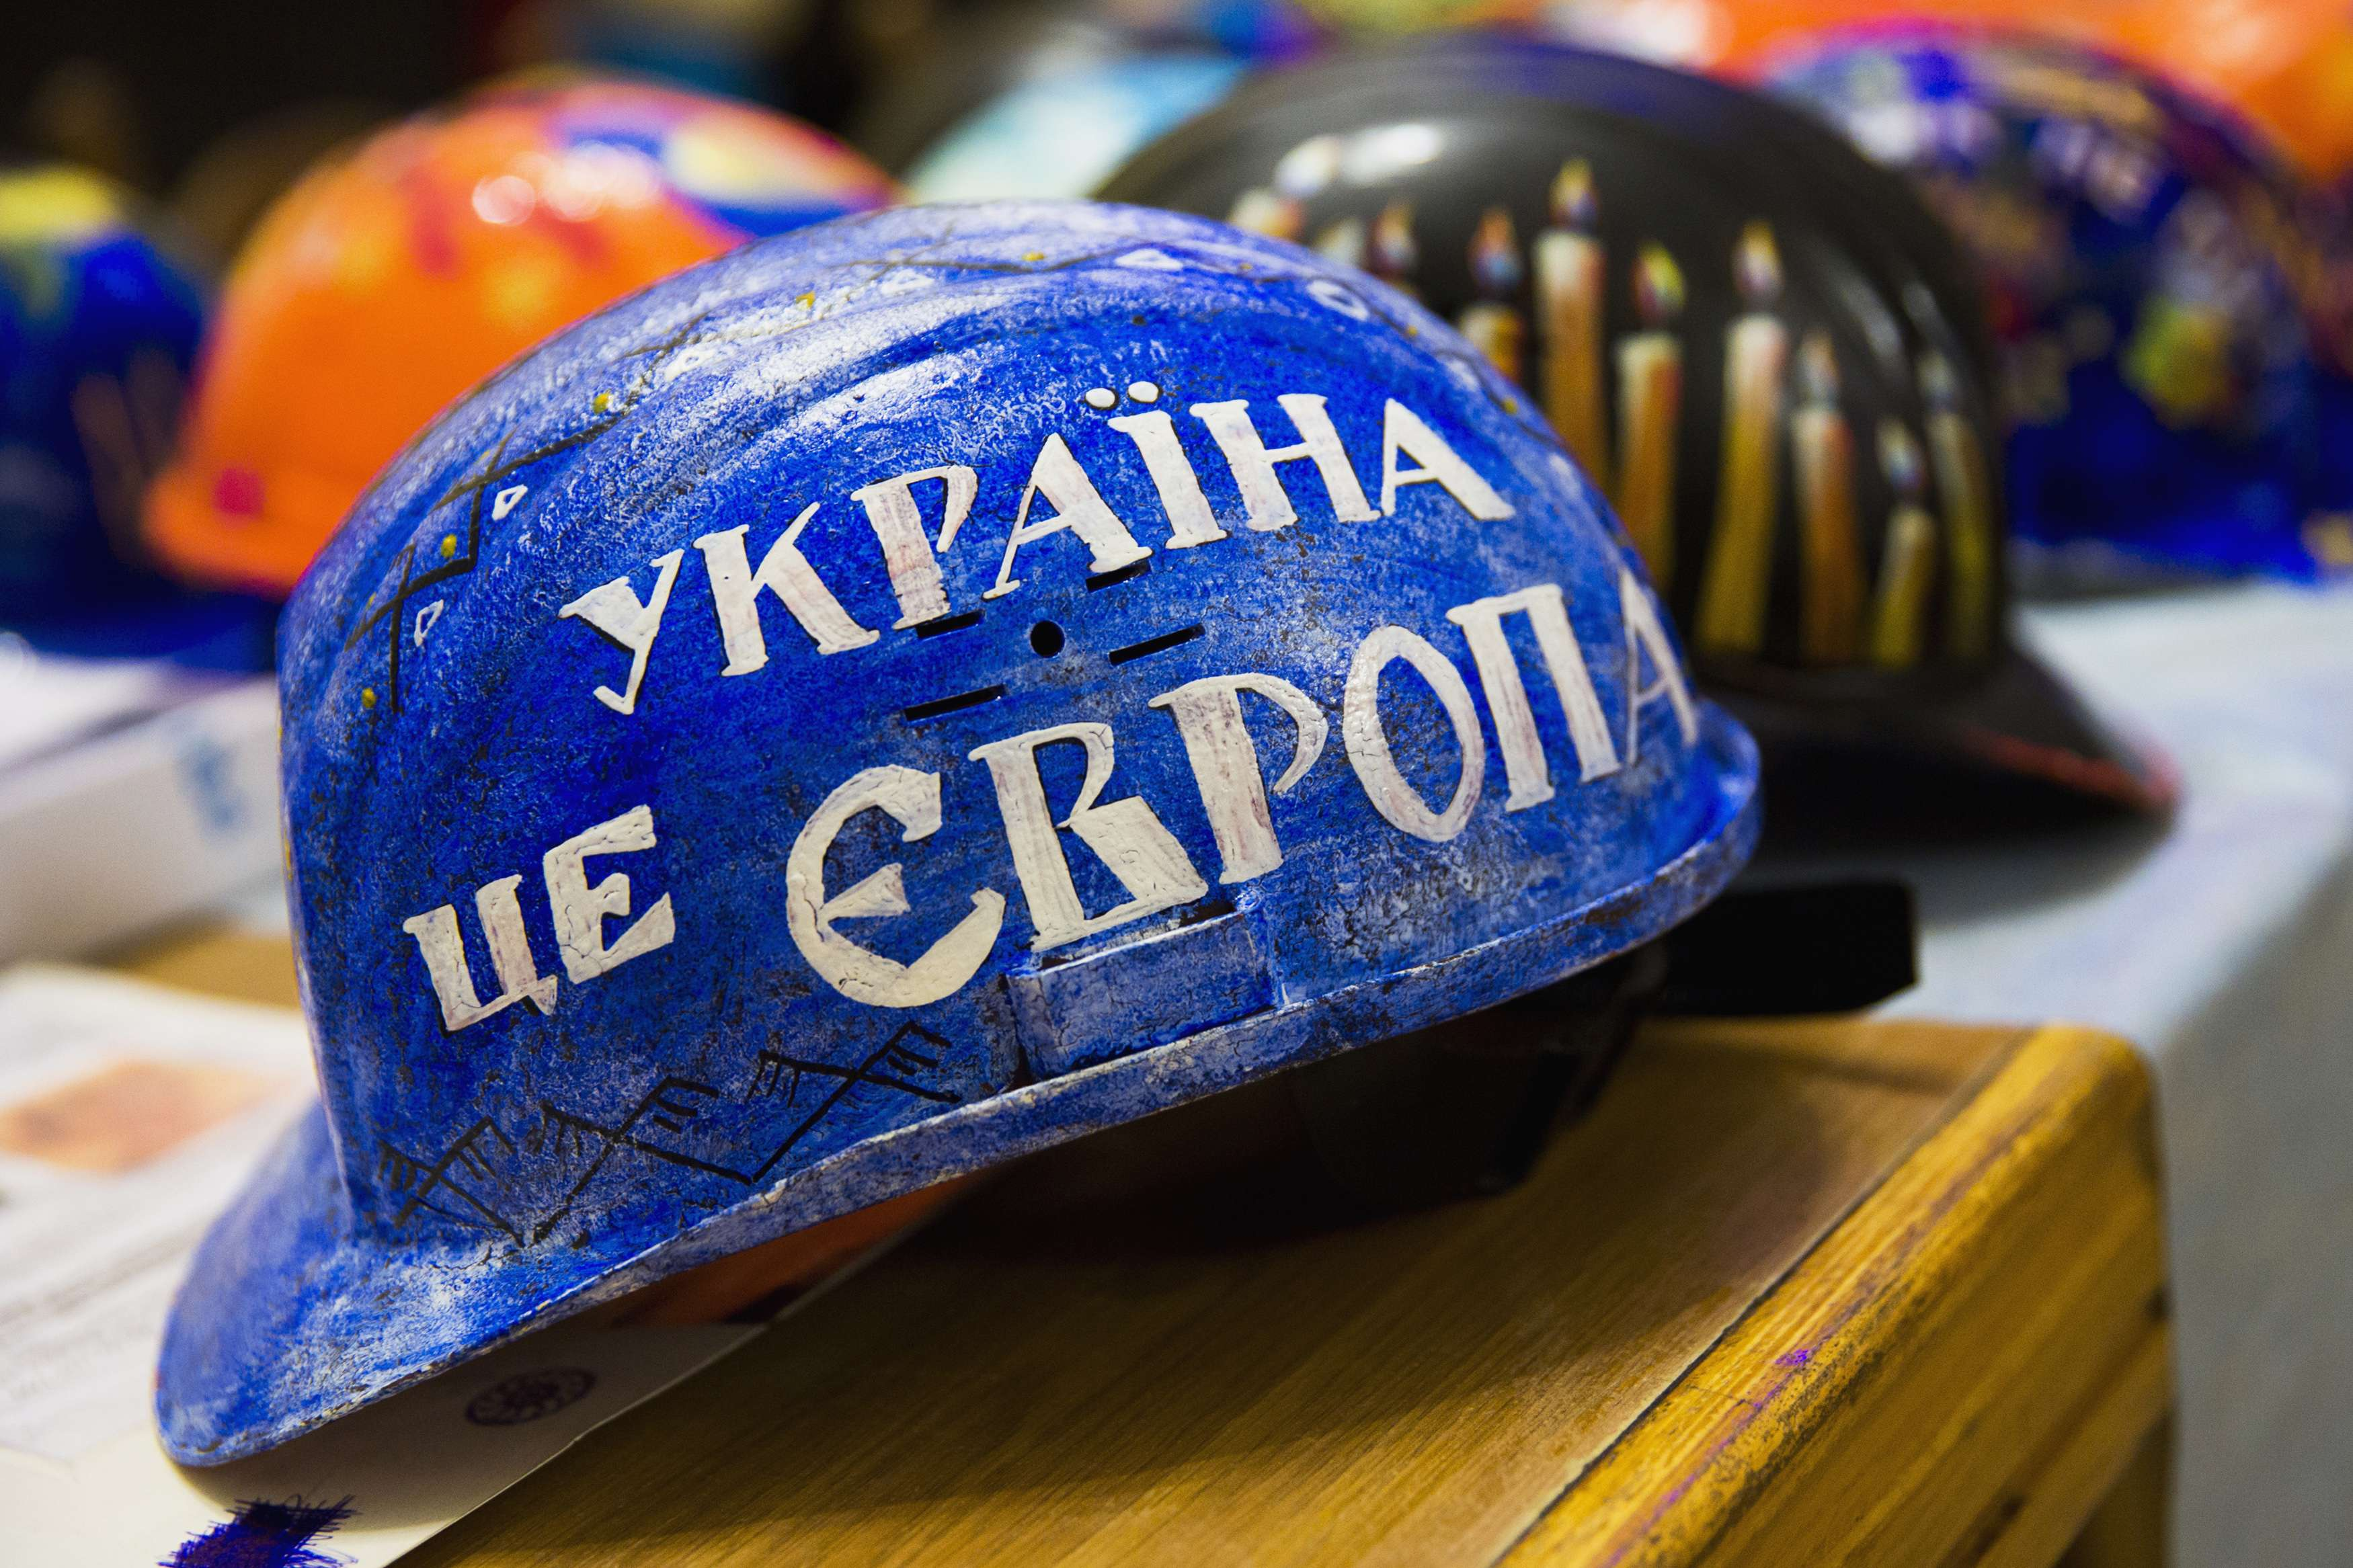 A hardhat for anti-government protester painted with words 'Ukraine is Europe', on display at Kiev City Hall